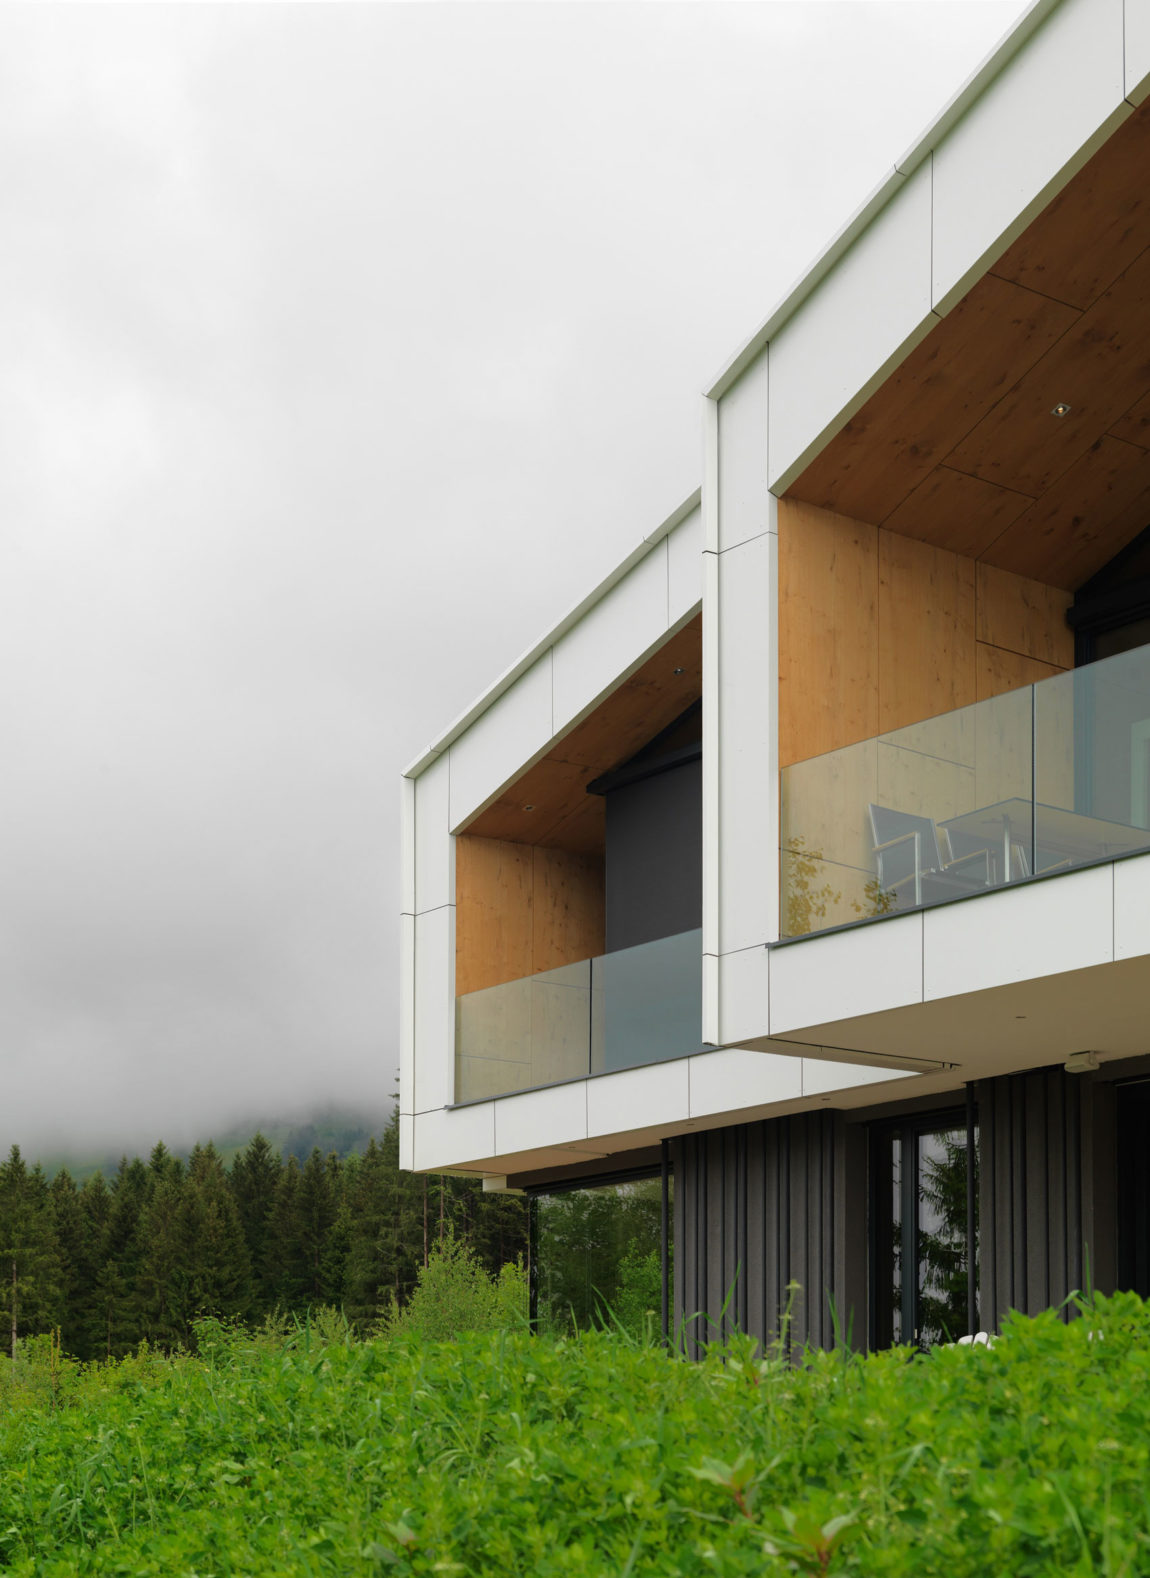 Mountain View House by SoNo arhitekti (4)